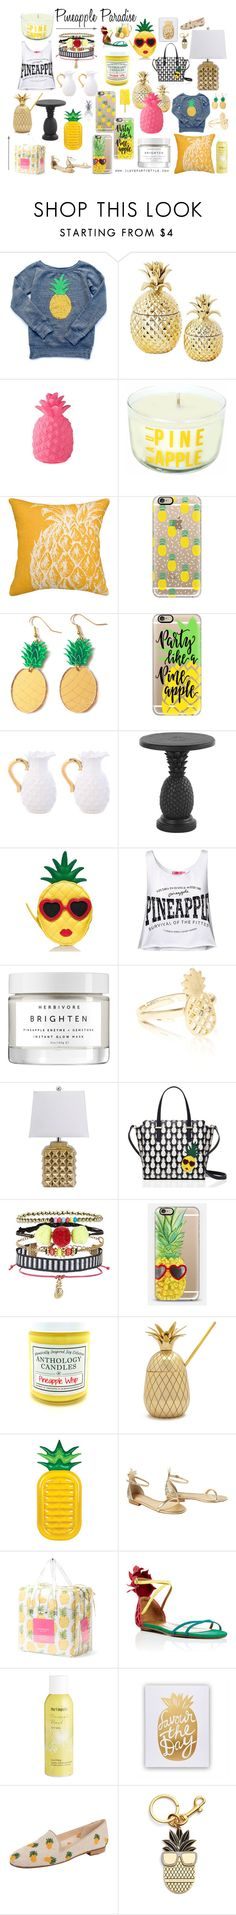 """Pineapple Paradise"" by ilovepartystyle on Polyvore featuring Modern Alchemy, Ballard Designs, Casetify, Tommy Bahama, Kate Spade, Accessorize, New Look, Sunnylife, Lilly Pulitzer and Aquazzura"